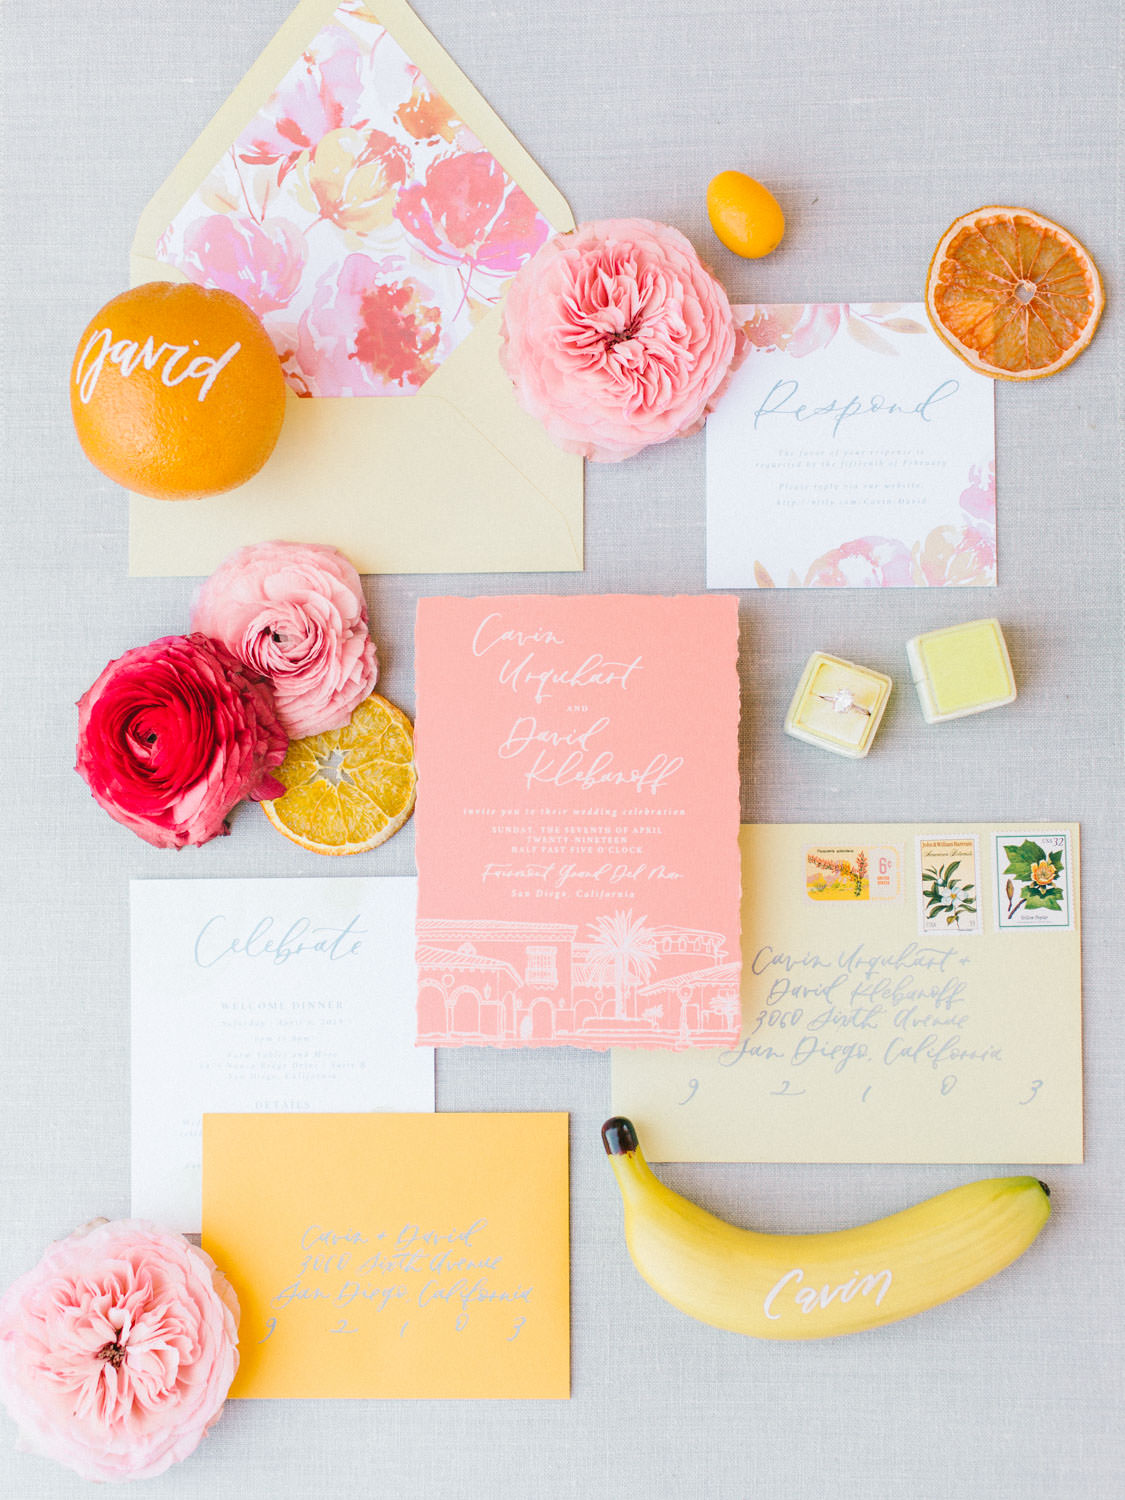 Colorful wedding invitations.. Coral wedding invitation with venue sketch illustration in white ink, soft yellow envelope with pink floral envelope liner, and calligraphy fruit for escort cards. Fairmont Grand del Mar wedding published on Martha Stewart Weddings